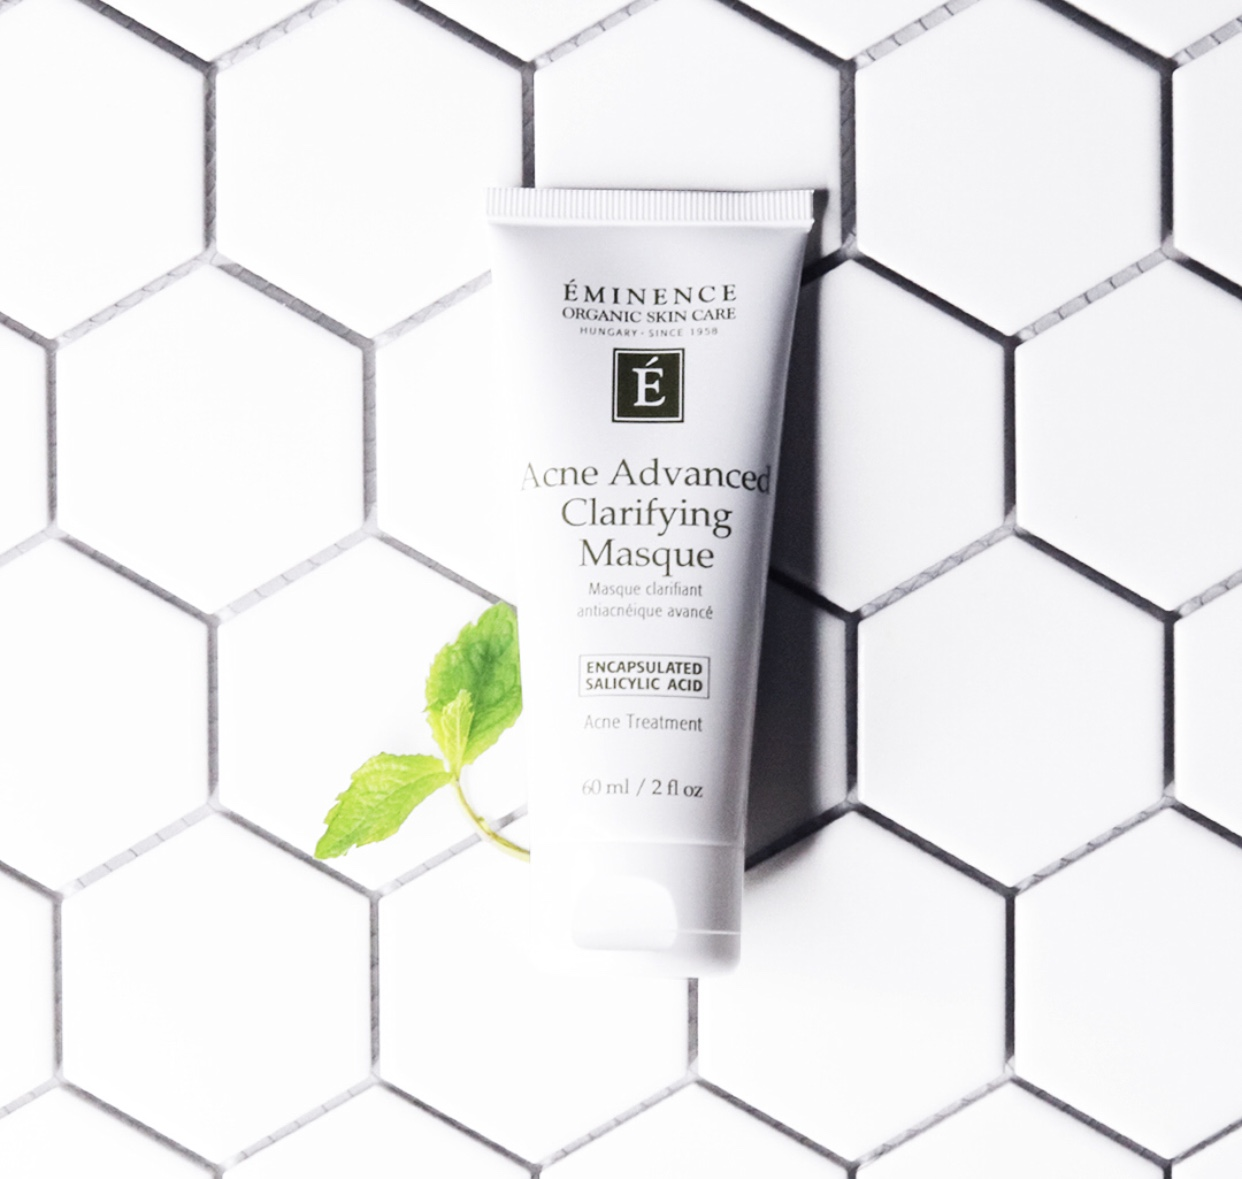 Step 2: Treat - Acne Advanced Clarifying Masque serves as a masque AND spot treatment to treat active acne and prevent future breakouts.